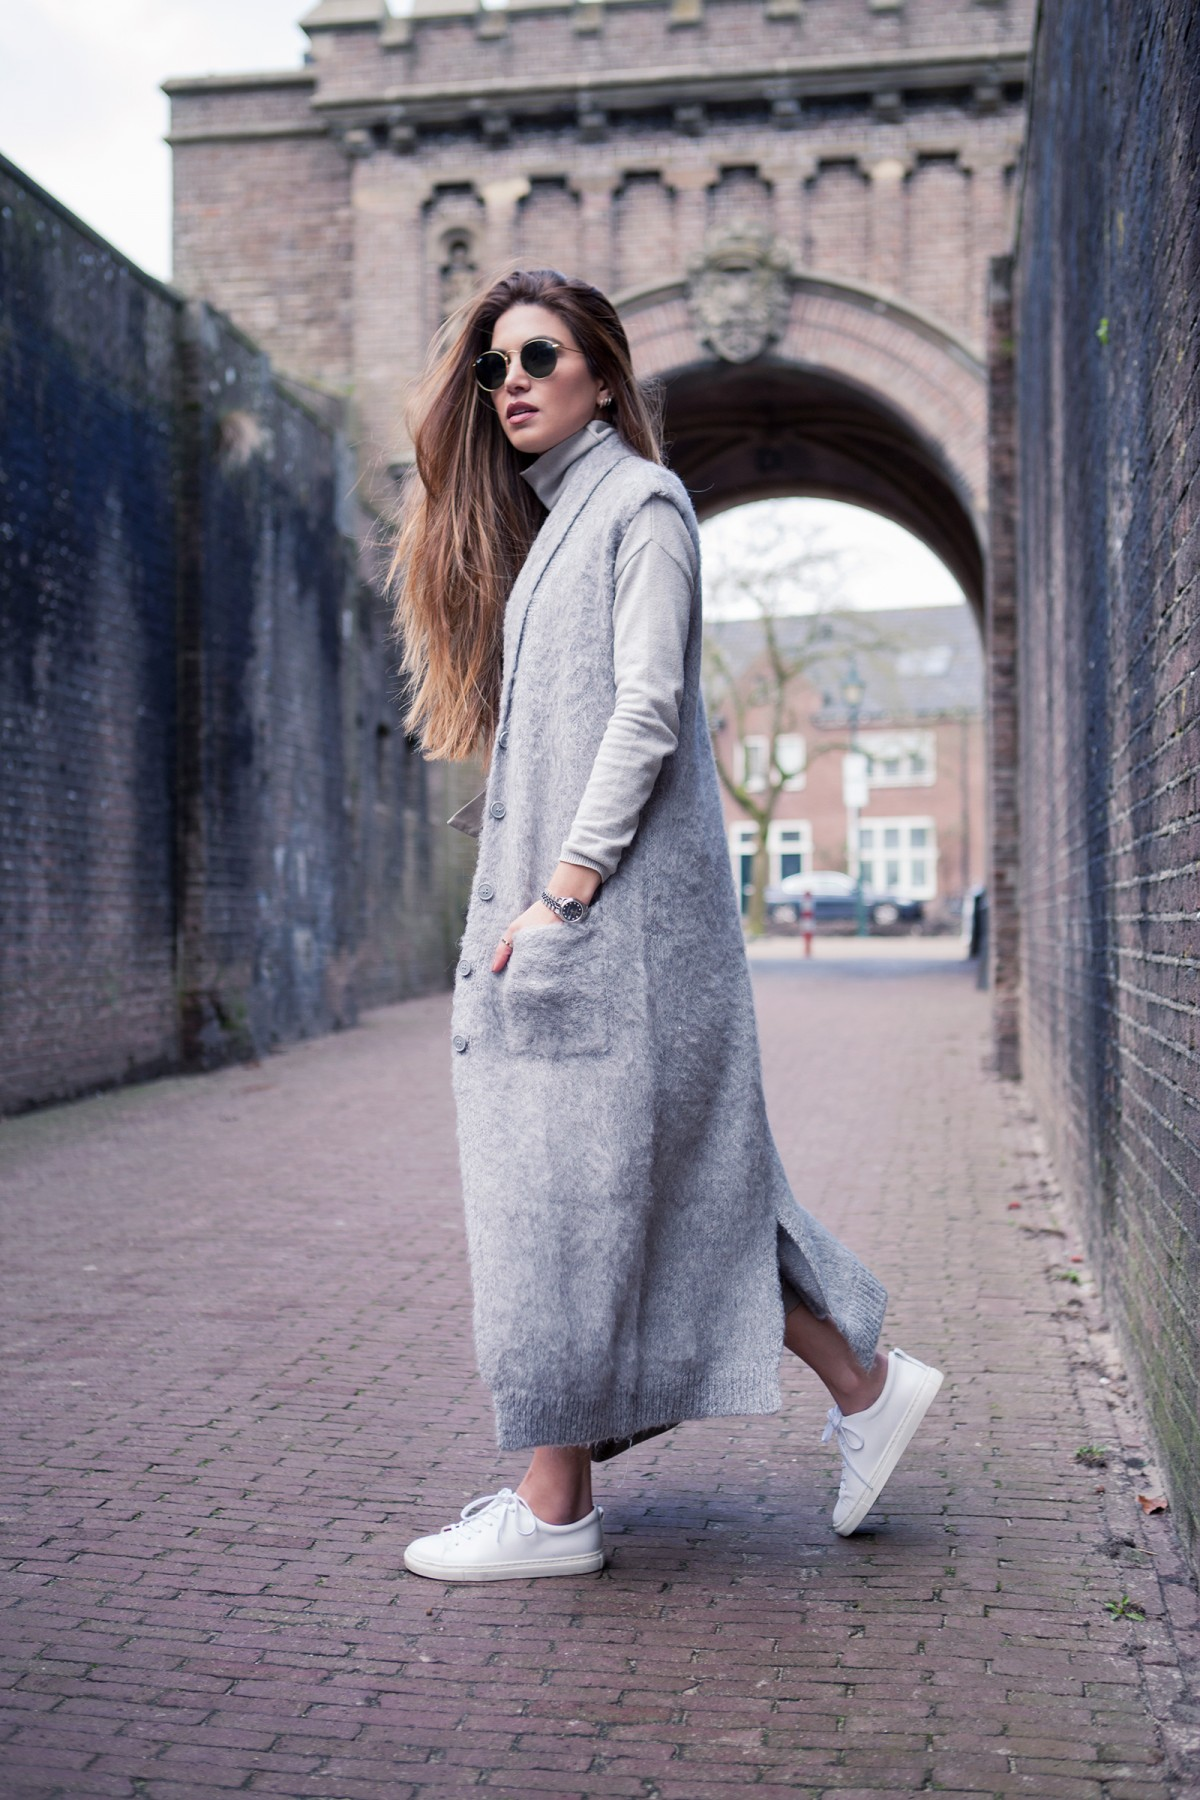 Long Cardigan Outfits... An Autumn Fashion Trend - Just ...